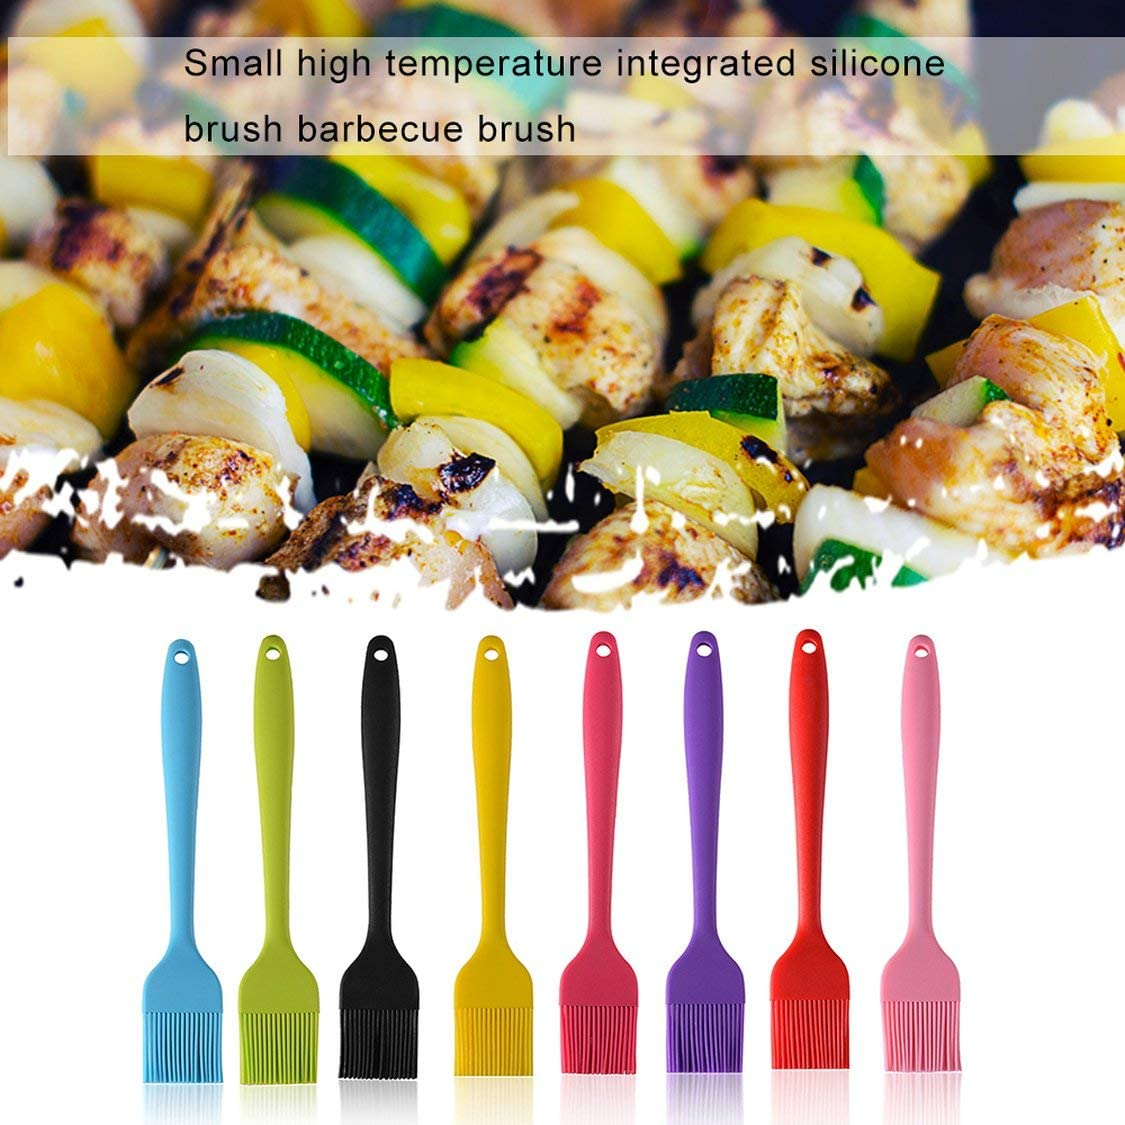 Dynamovolition Conception Pratique Silicone Silicone Gâteau Pain Huile Crème Barbecue Cuisson Basting Brosse Outil Barbecue Cuisson Grillade Rose Rouge